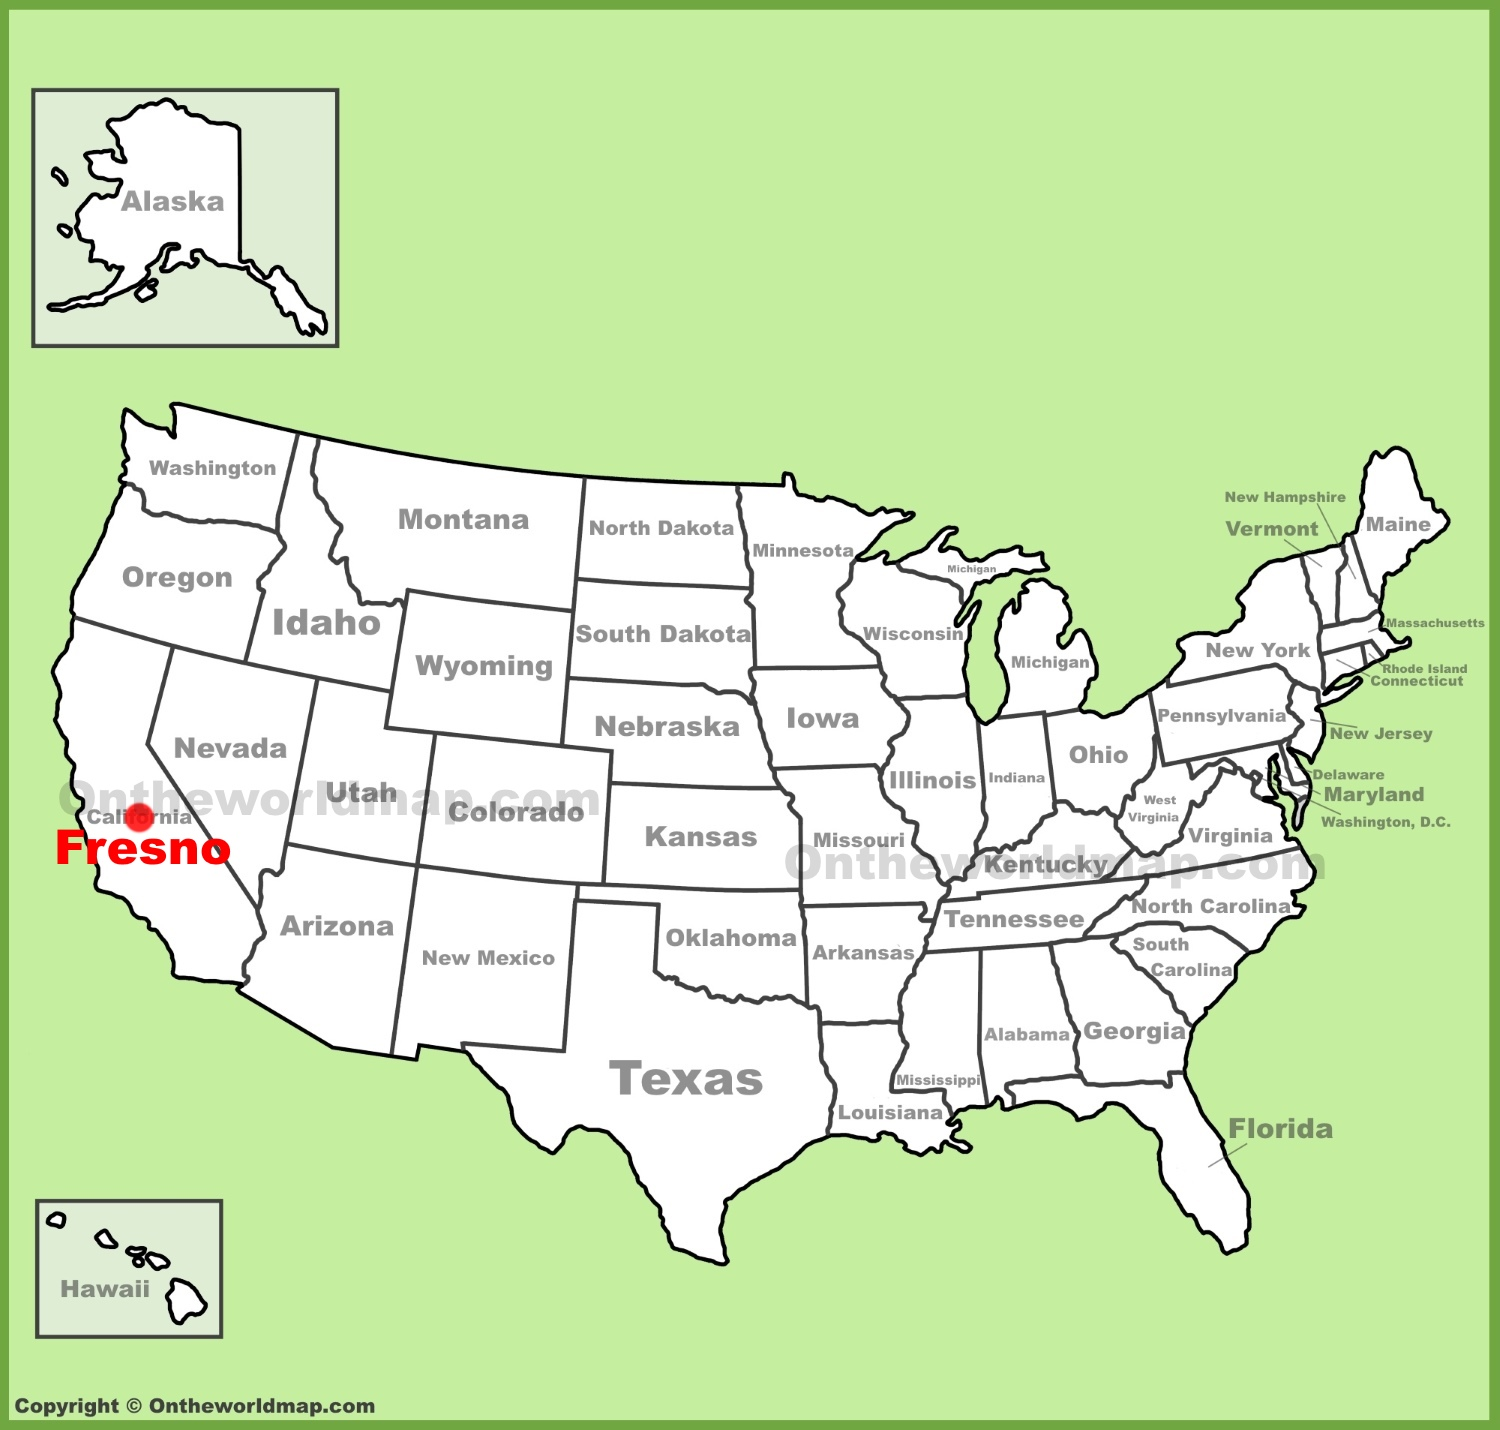 Fresno location on the U.S. Map on